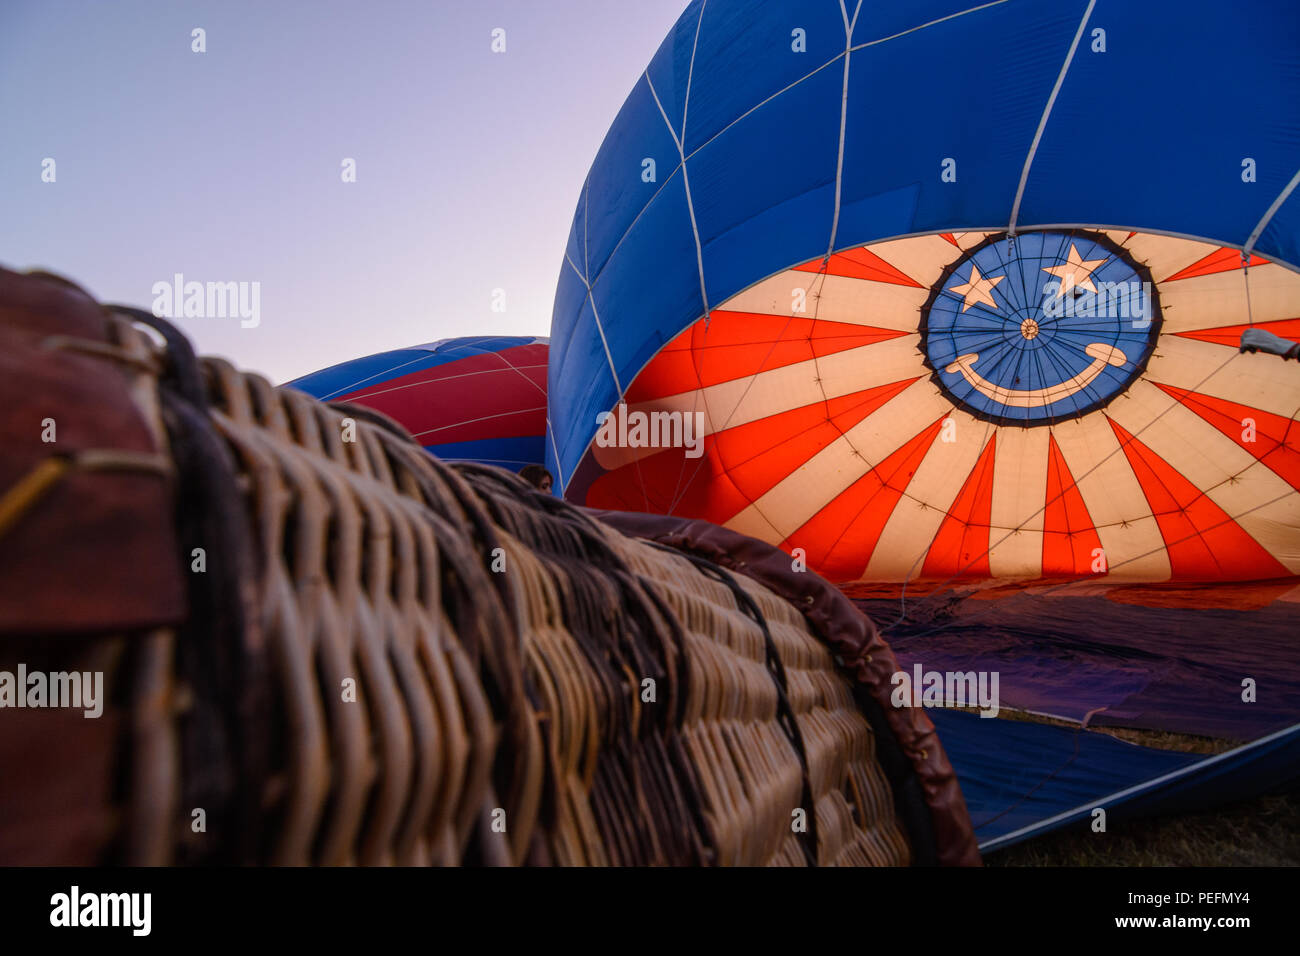 A hot air balloon and basket with a colorful smiley face being inflated just before the start of the Great Reno Balloon Race in 2017. - Stock Image